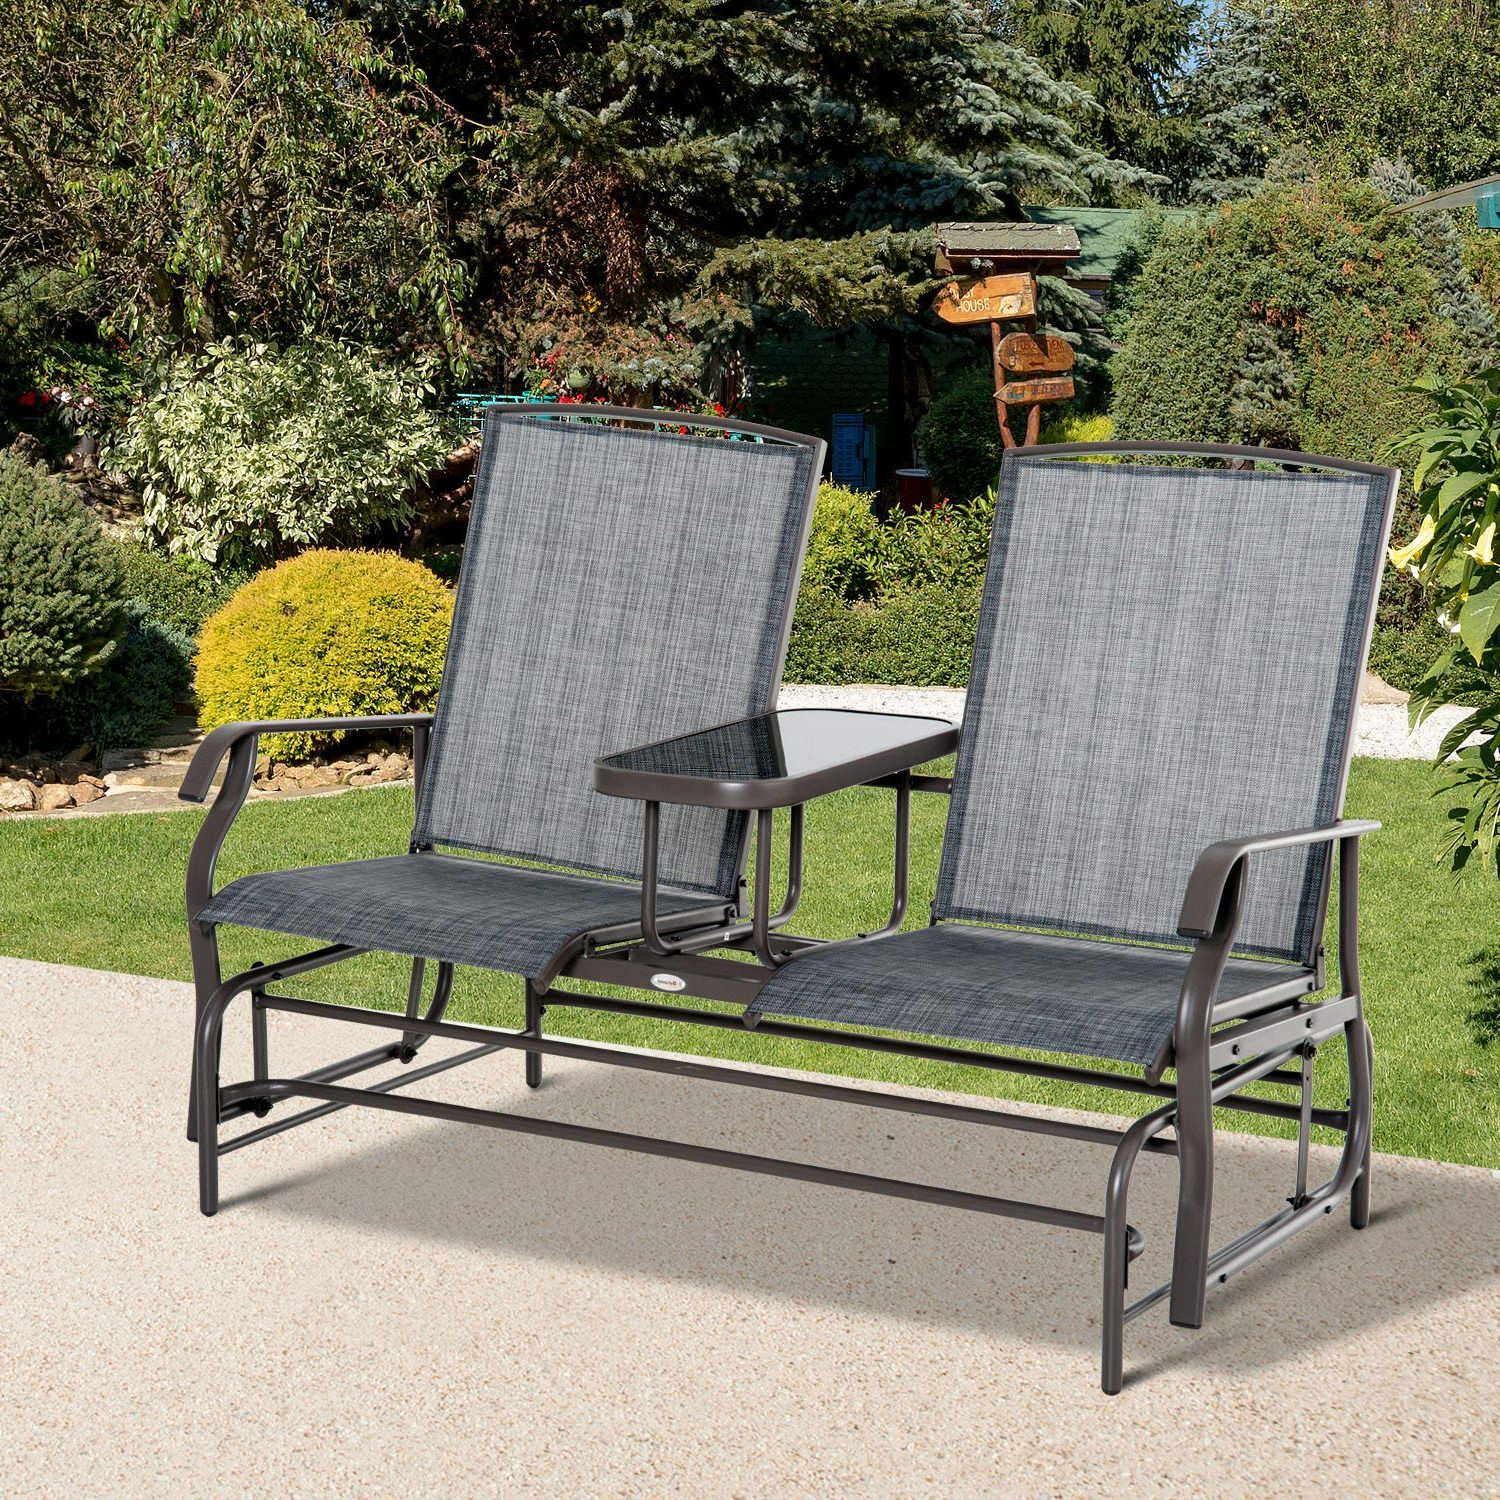 Most Recently Released Outsunny 2 Seater Patio Glider Rocking Chair Metal Swing Bench Furniture Table With Outdoor Patio Swing Glider Bench Chairs (View 17 of 30)